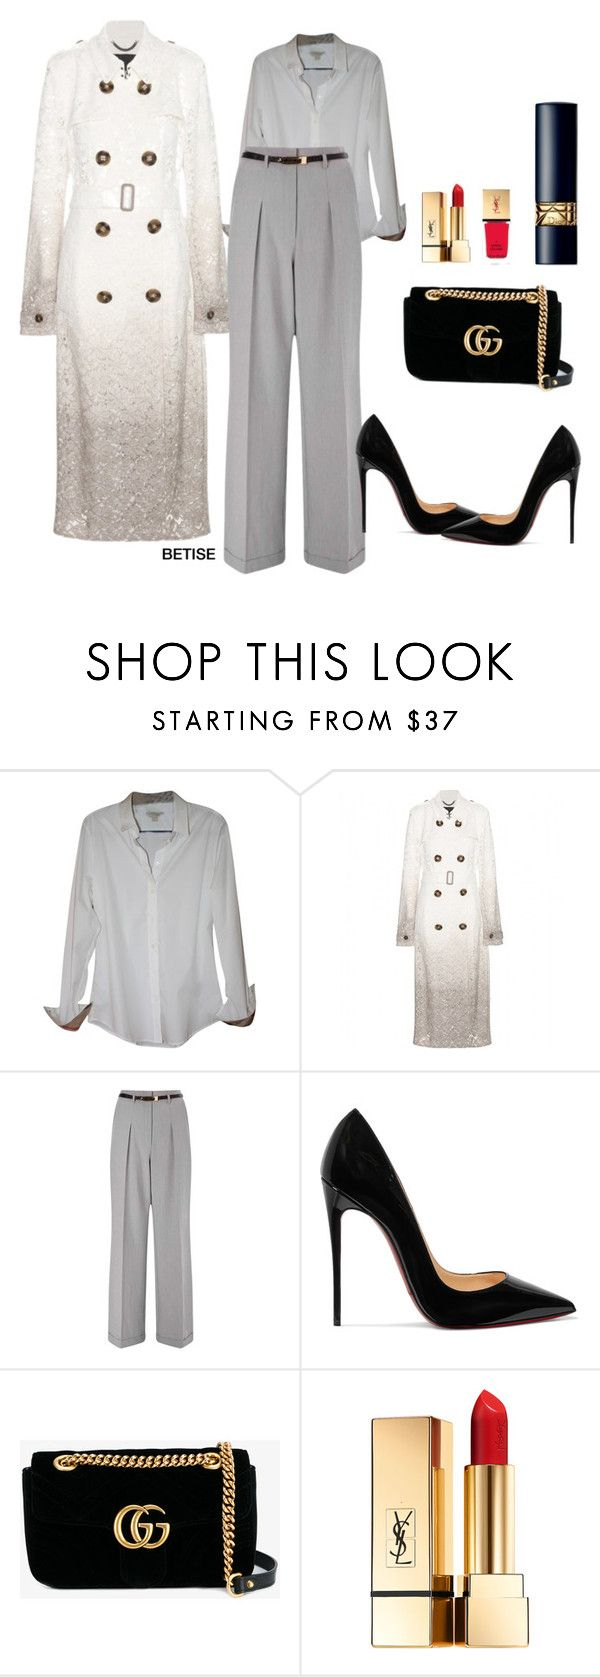 """""""WINTER......NIGHT !"""" by betty-sanga ❤ liked on Polyvore featuring Burberry, Miss Selfridge, Christian Louboutin, Gucci and Yves Saint Laurent"""